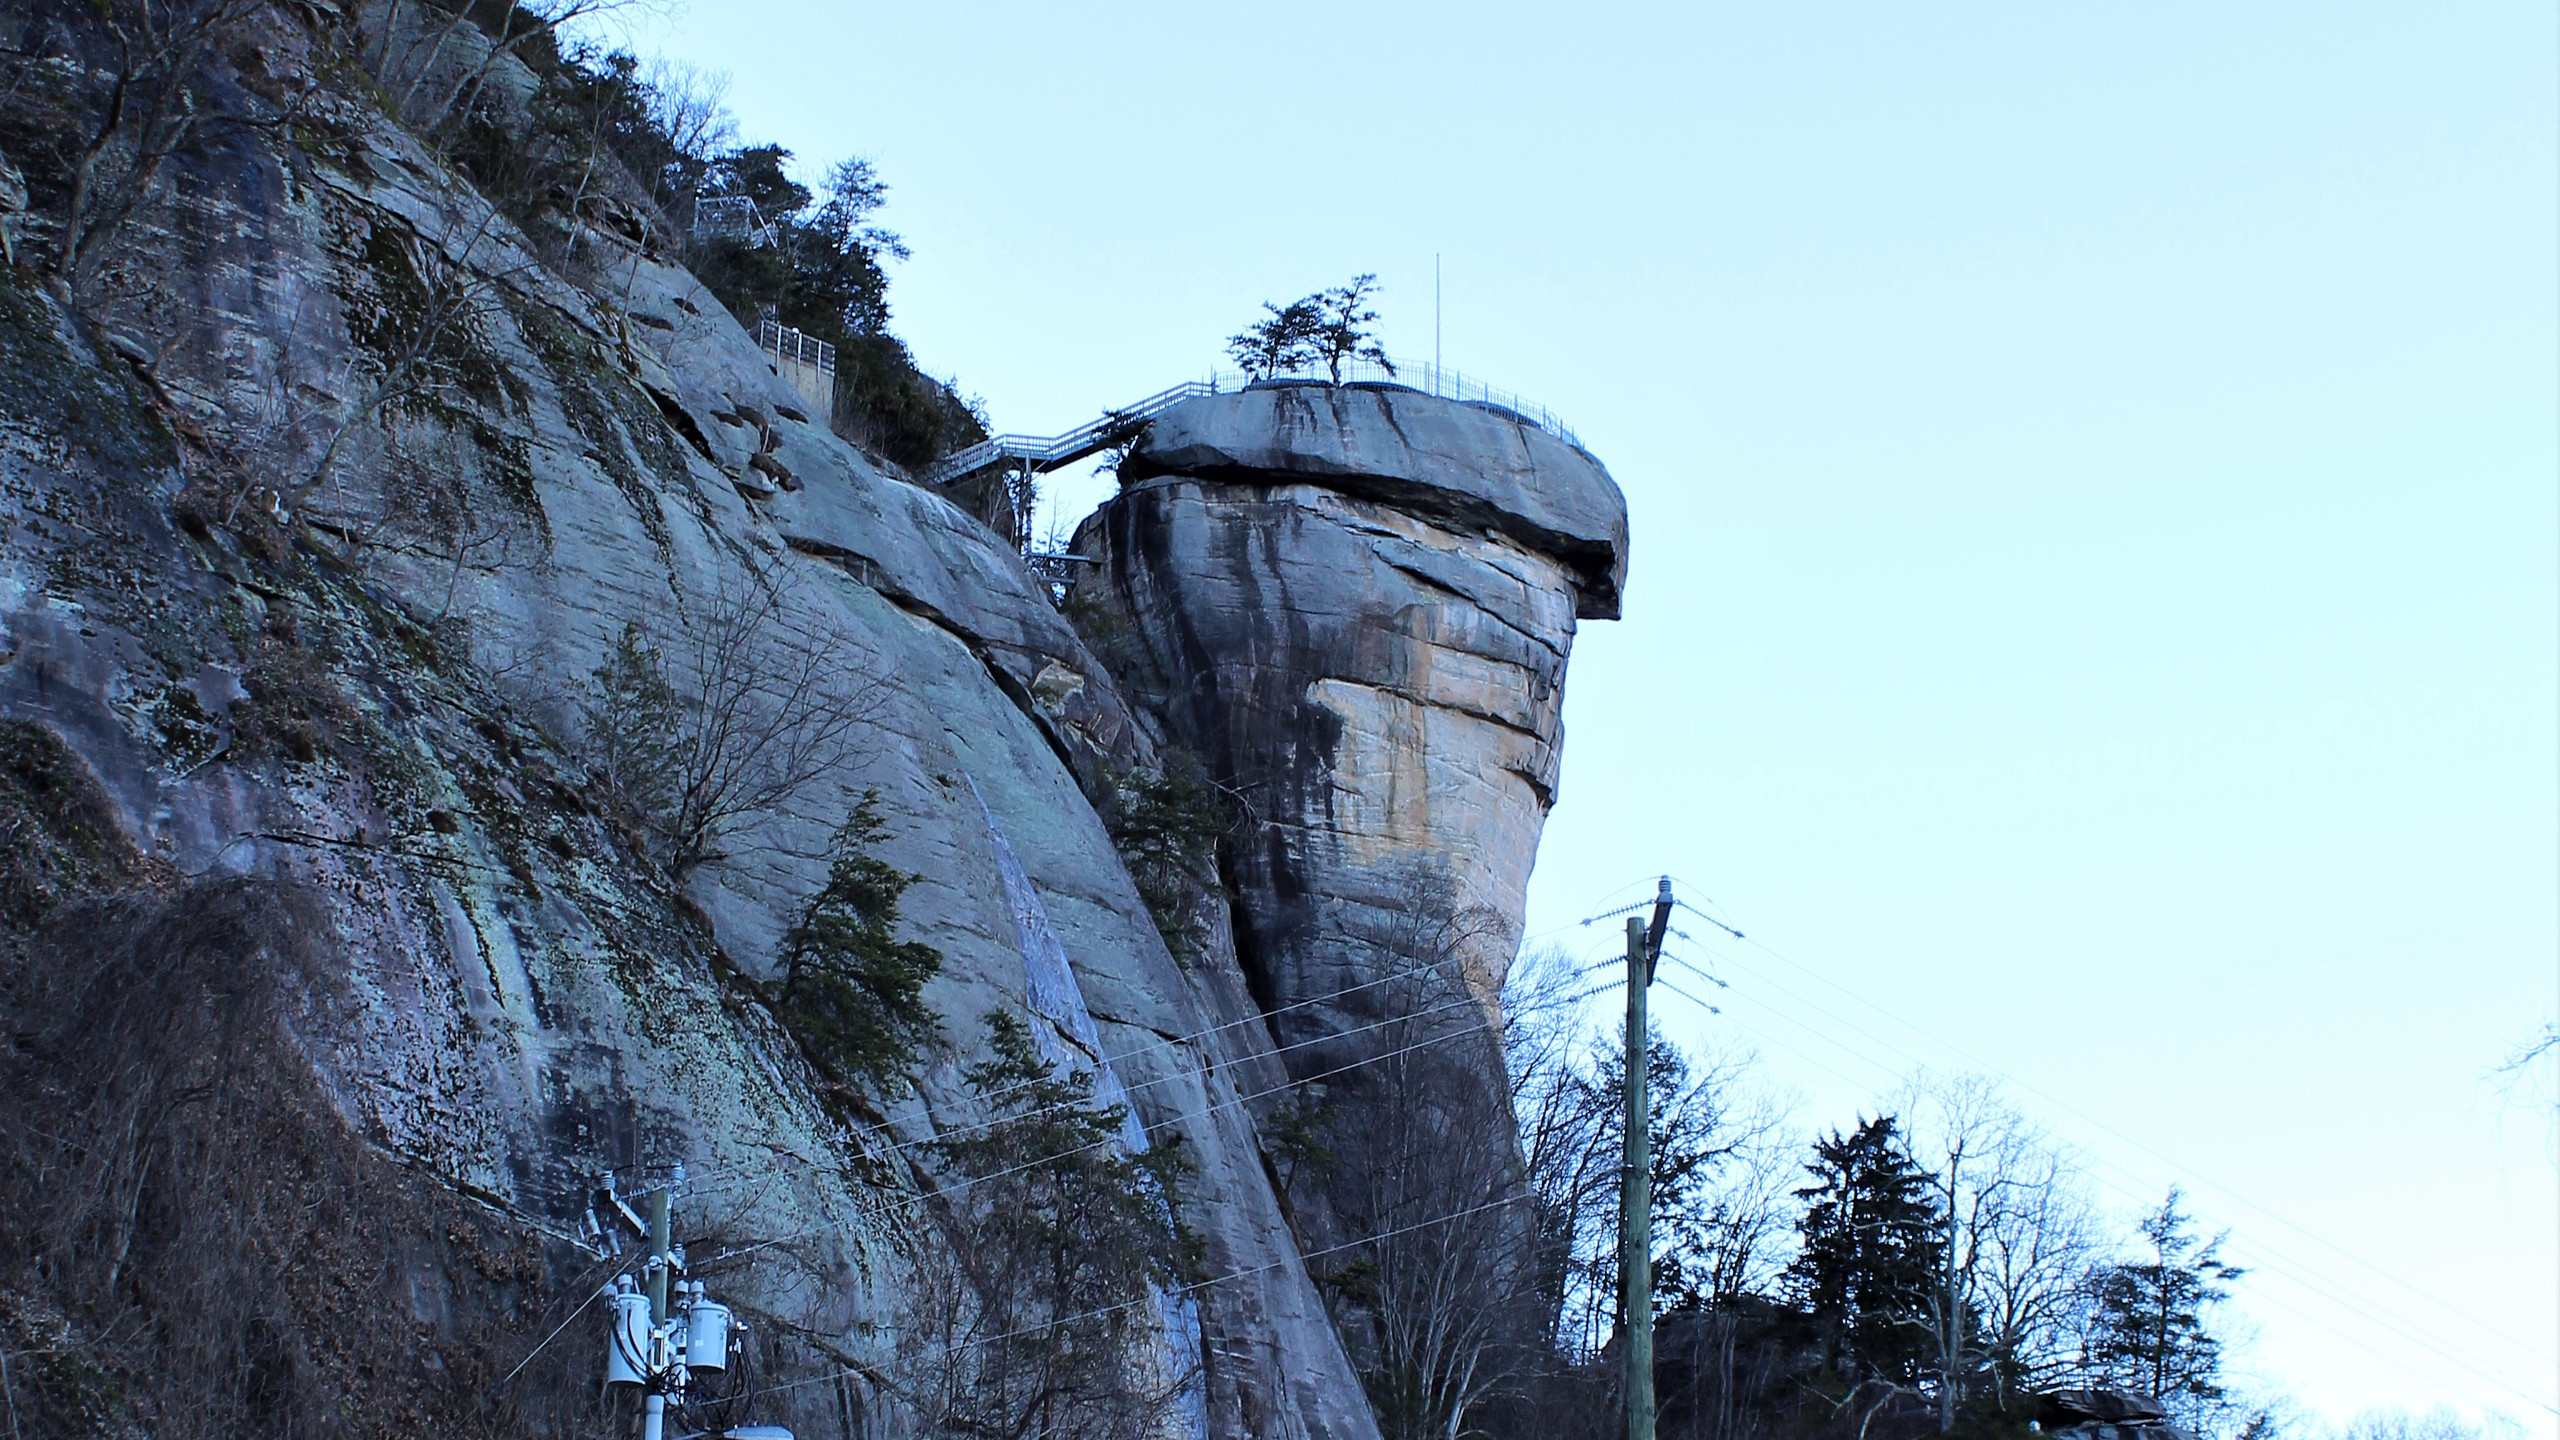 Chimney Rock from the Parking Lot